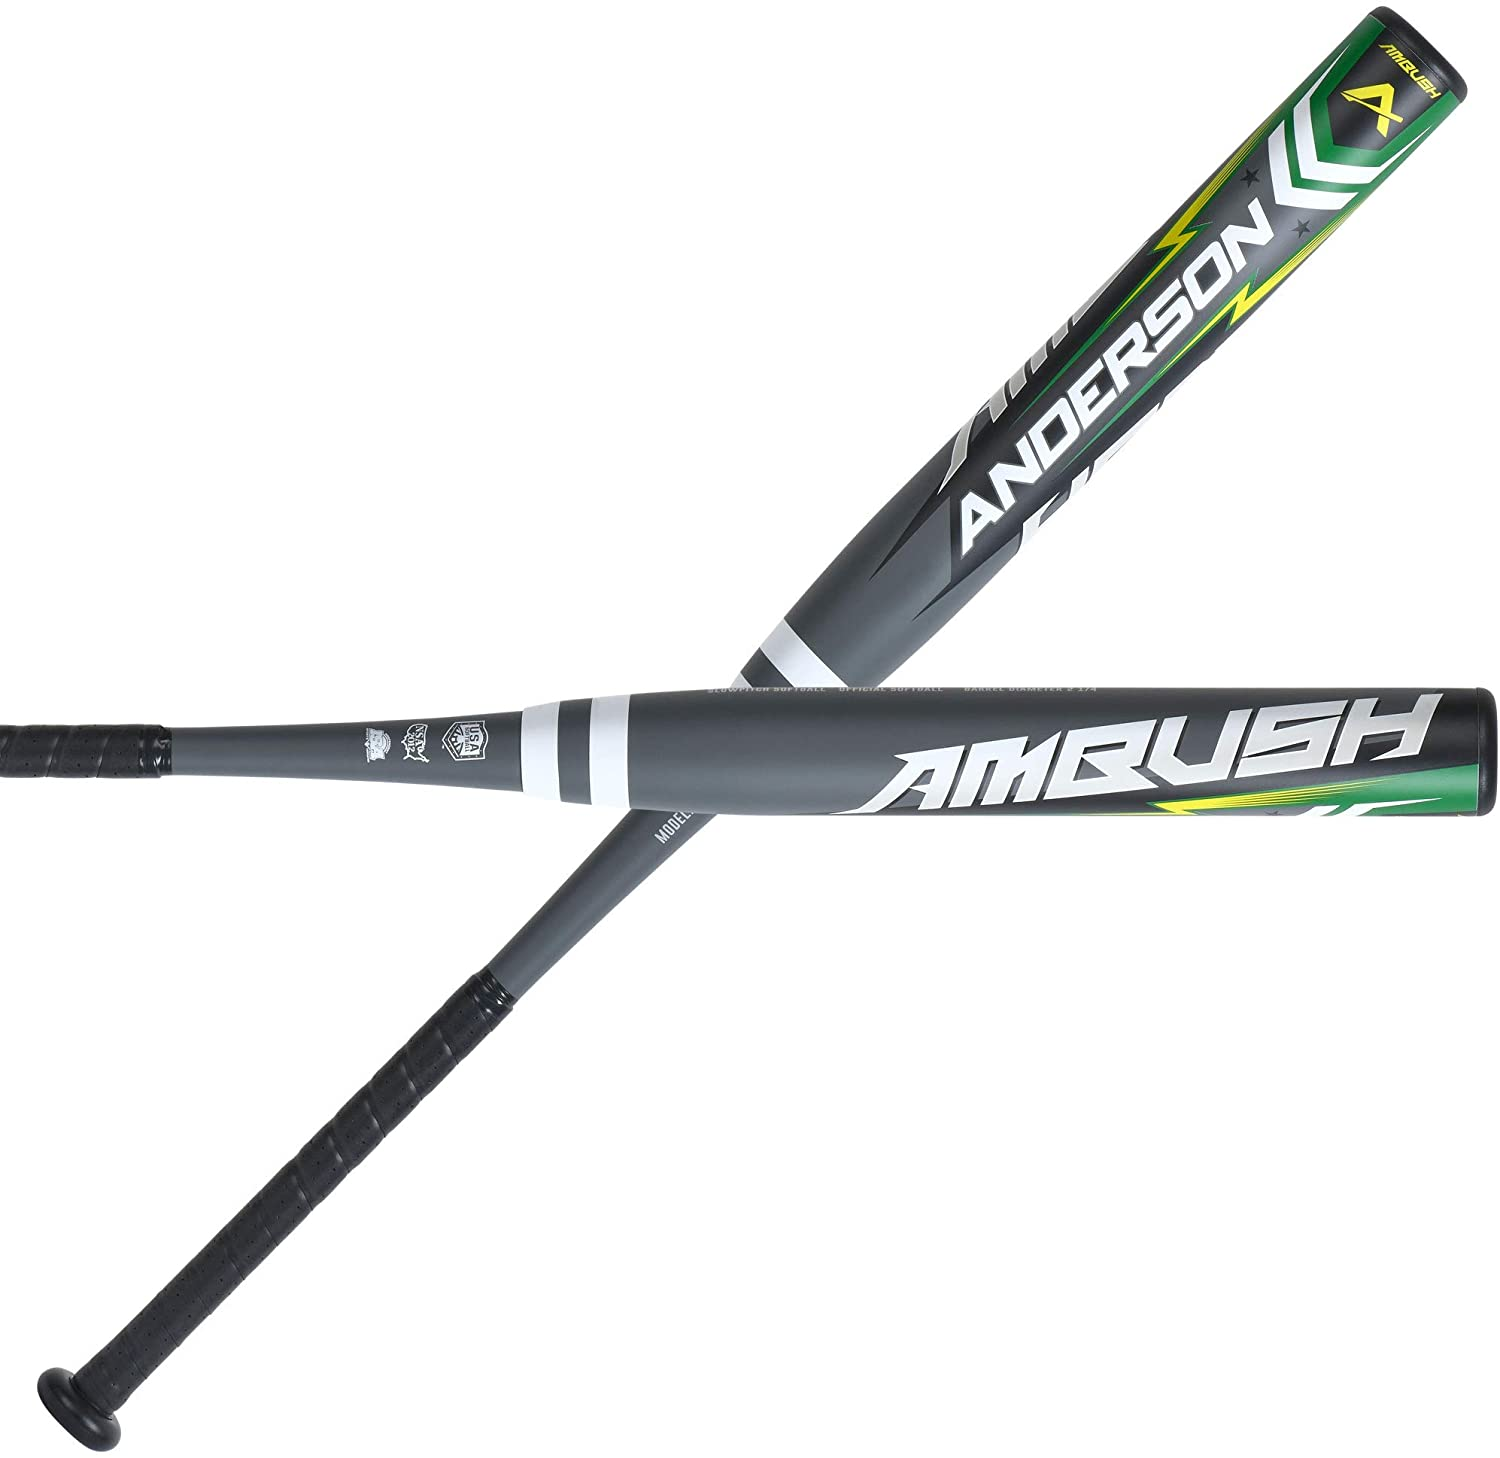 anderson-ambush-2021-composite-slowpitch-softball-bat-34-inch-27-oz 0110533-3427 Anderson  Anderson Rocketech has been dominating the double wall alloy slowpitch market.